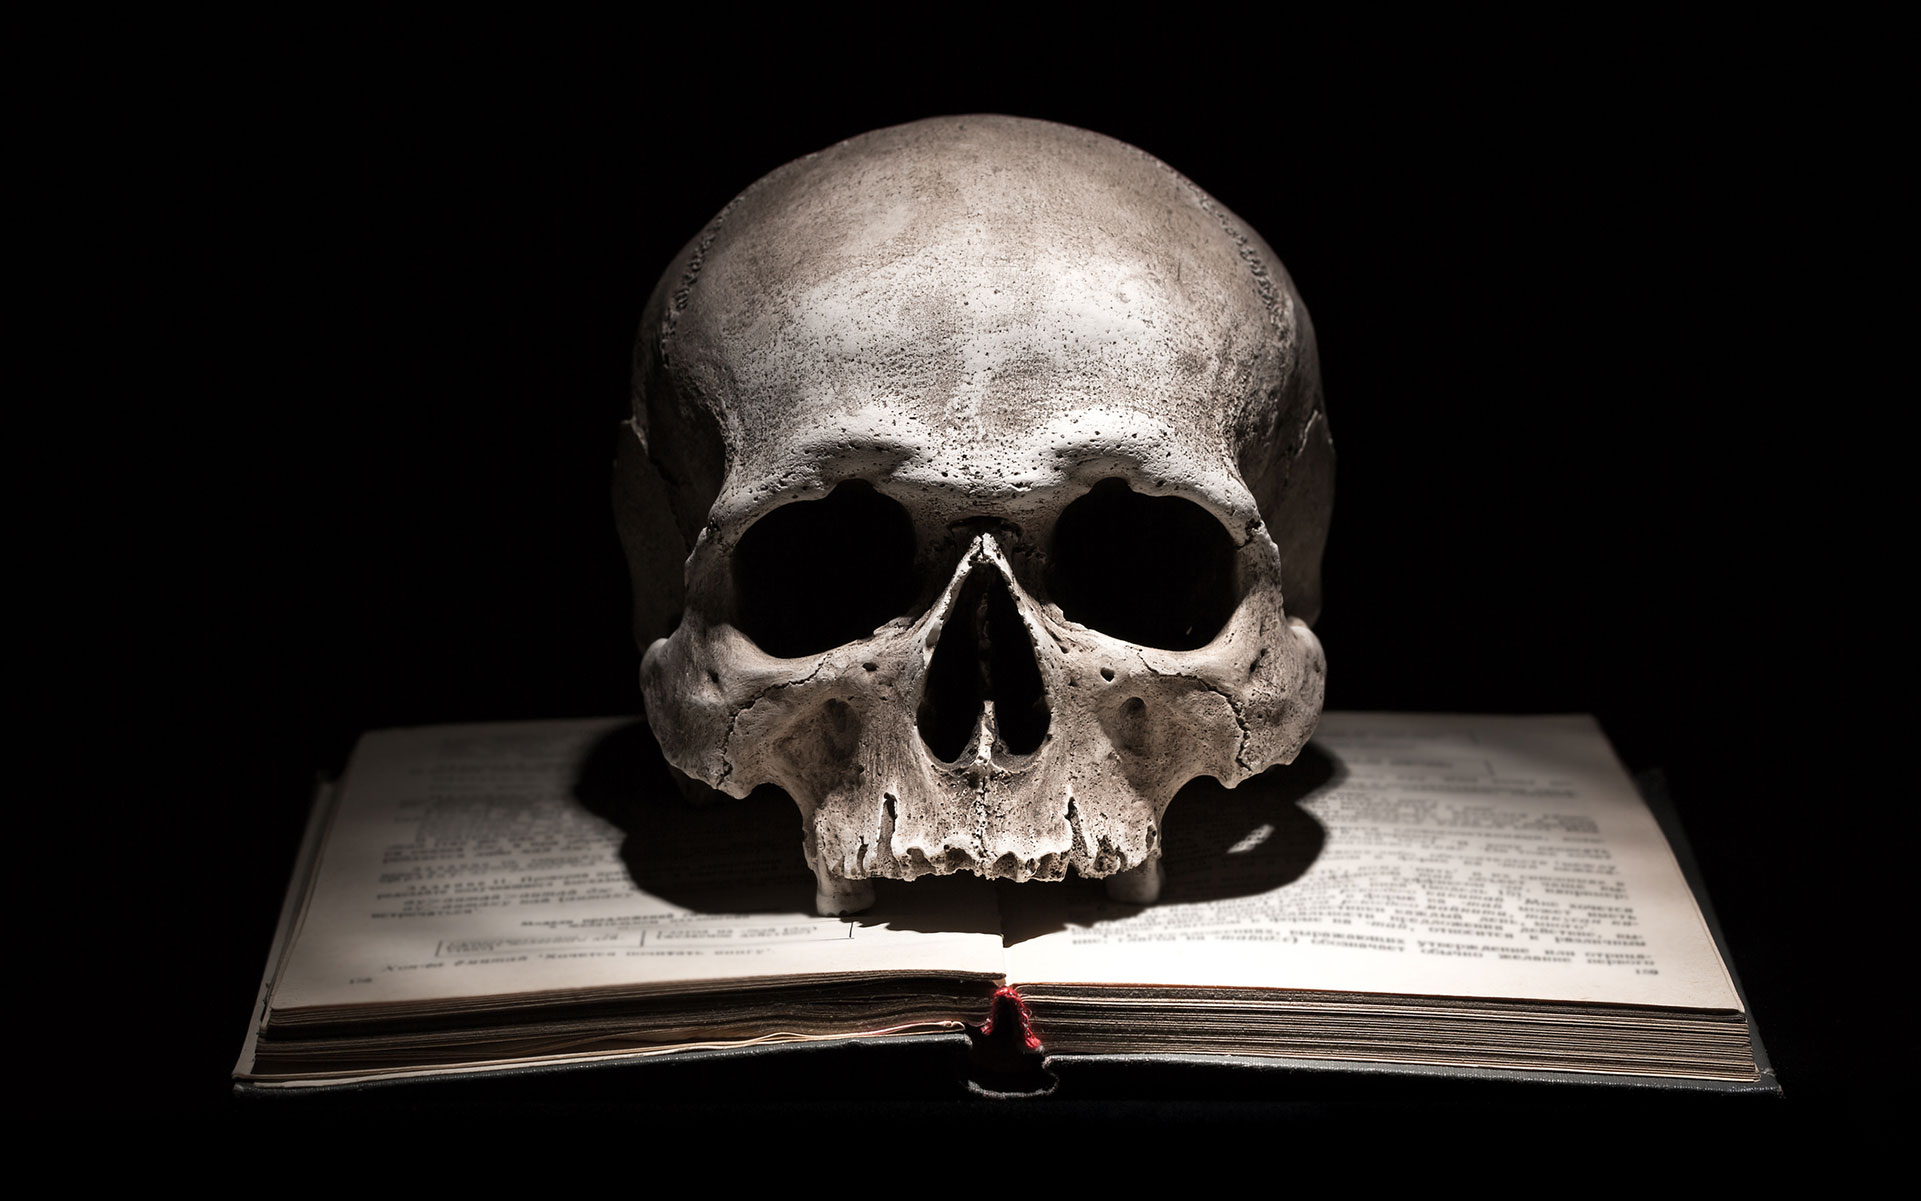 Pair These Spooky Books With Eerie Strains